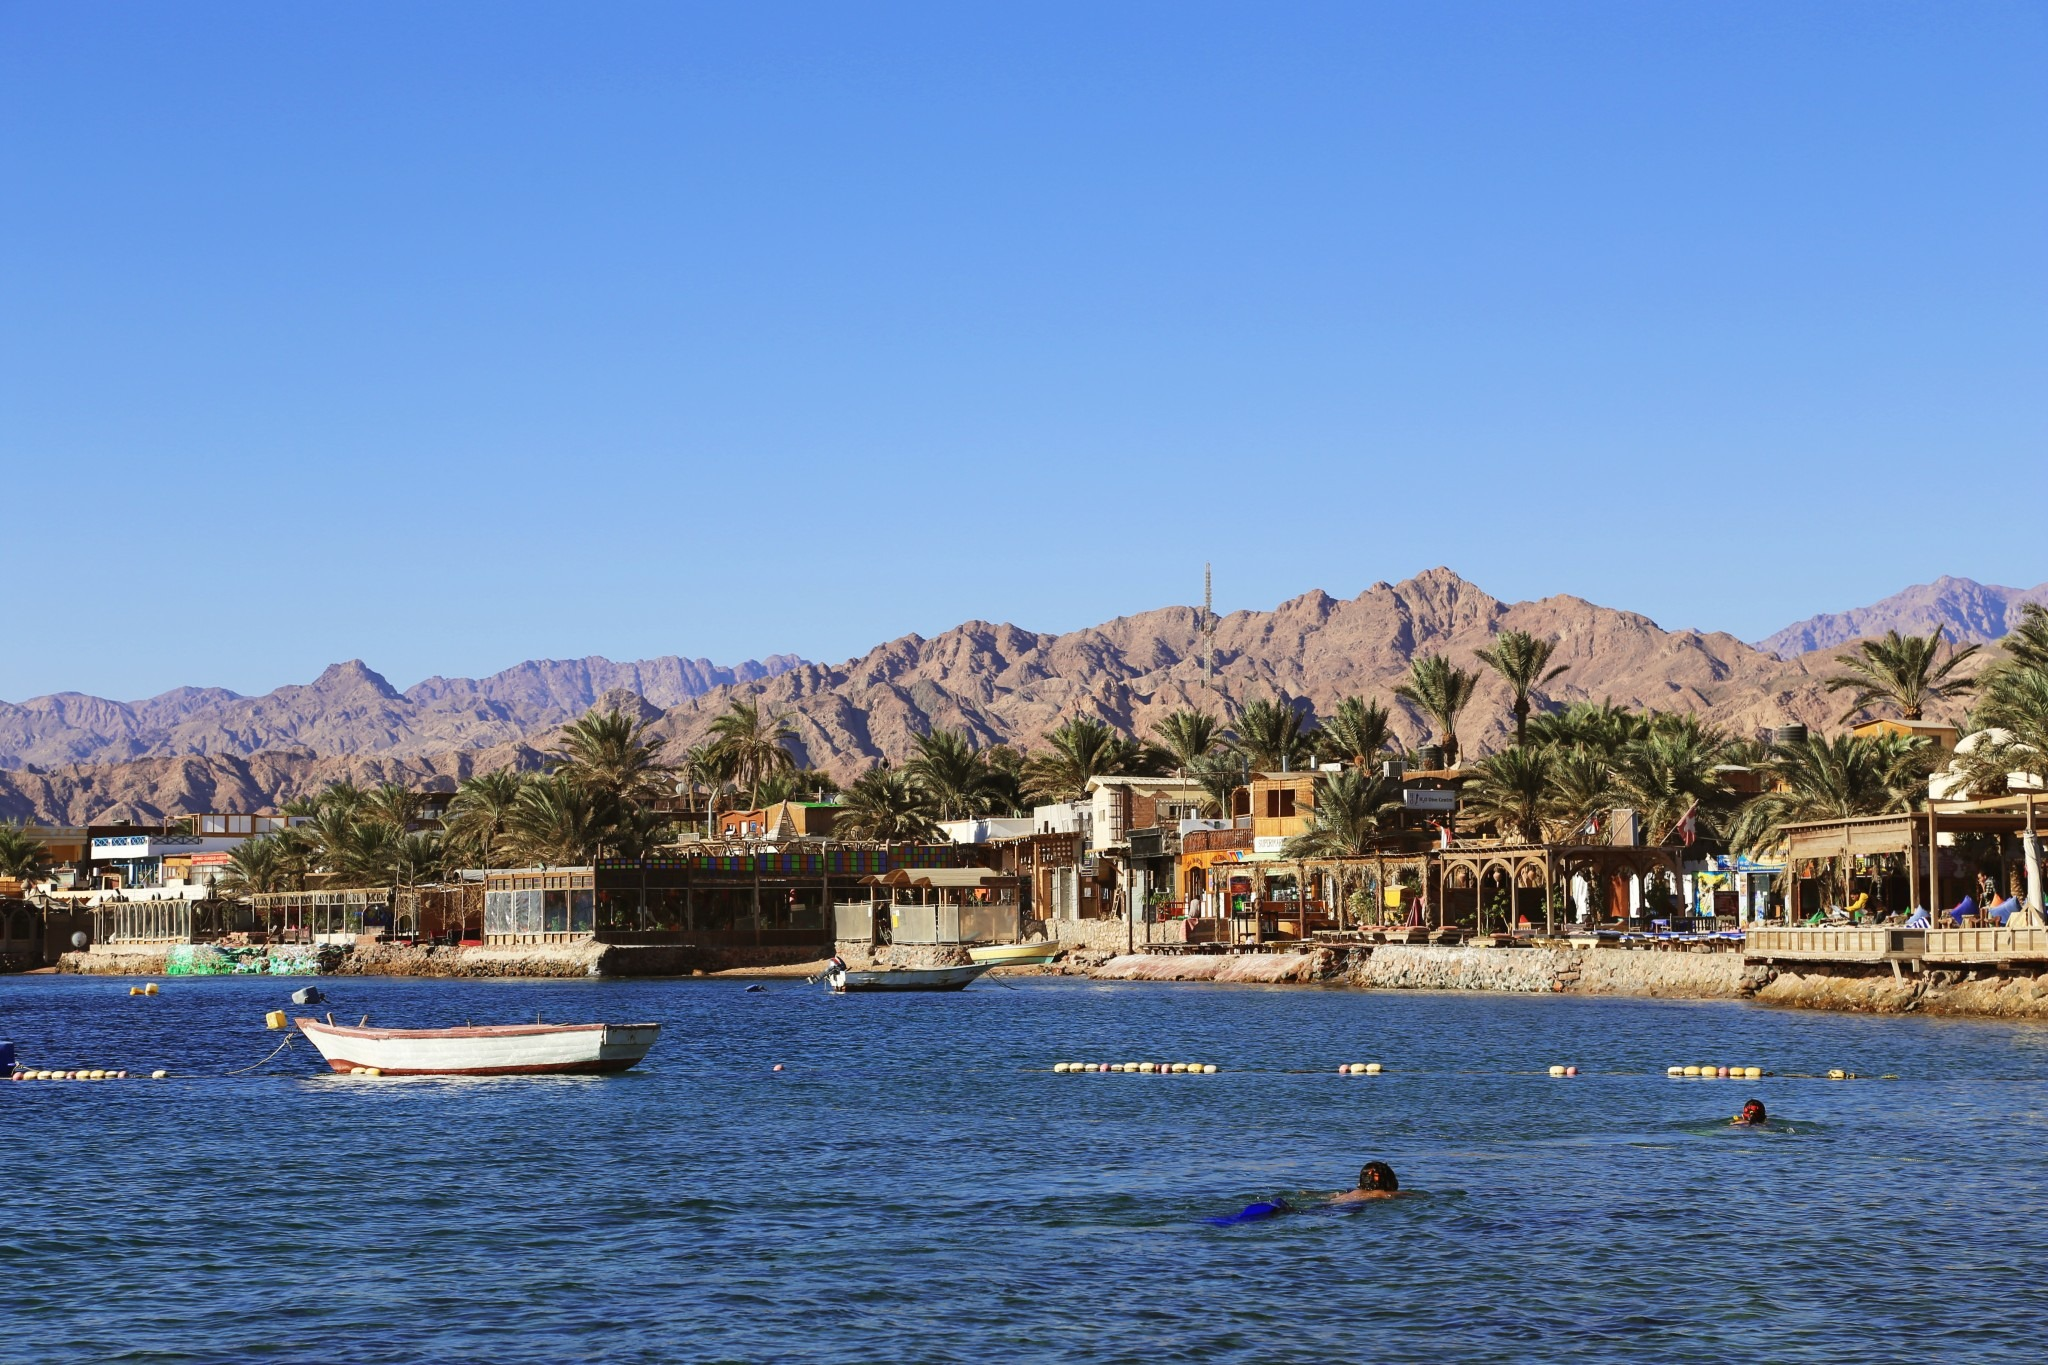 city of dahab viewed from the water